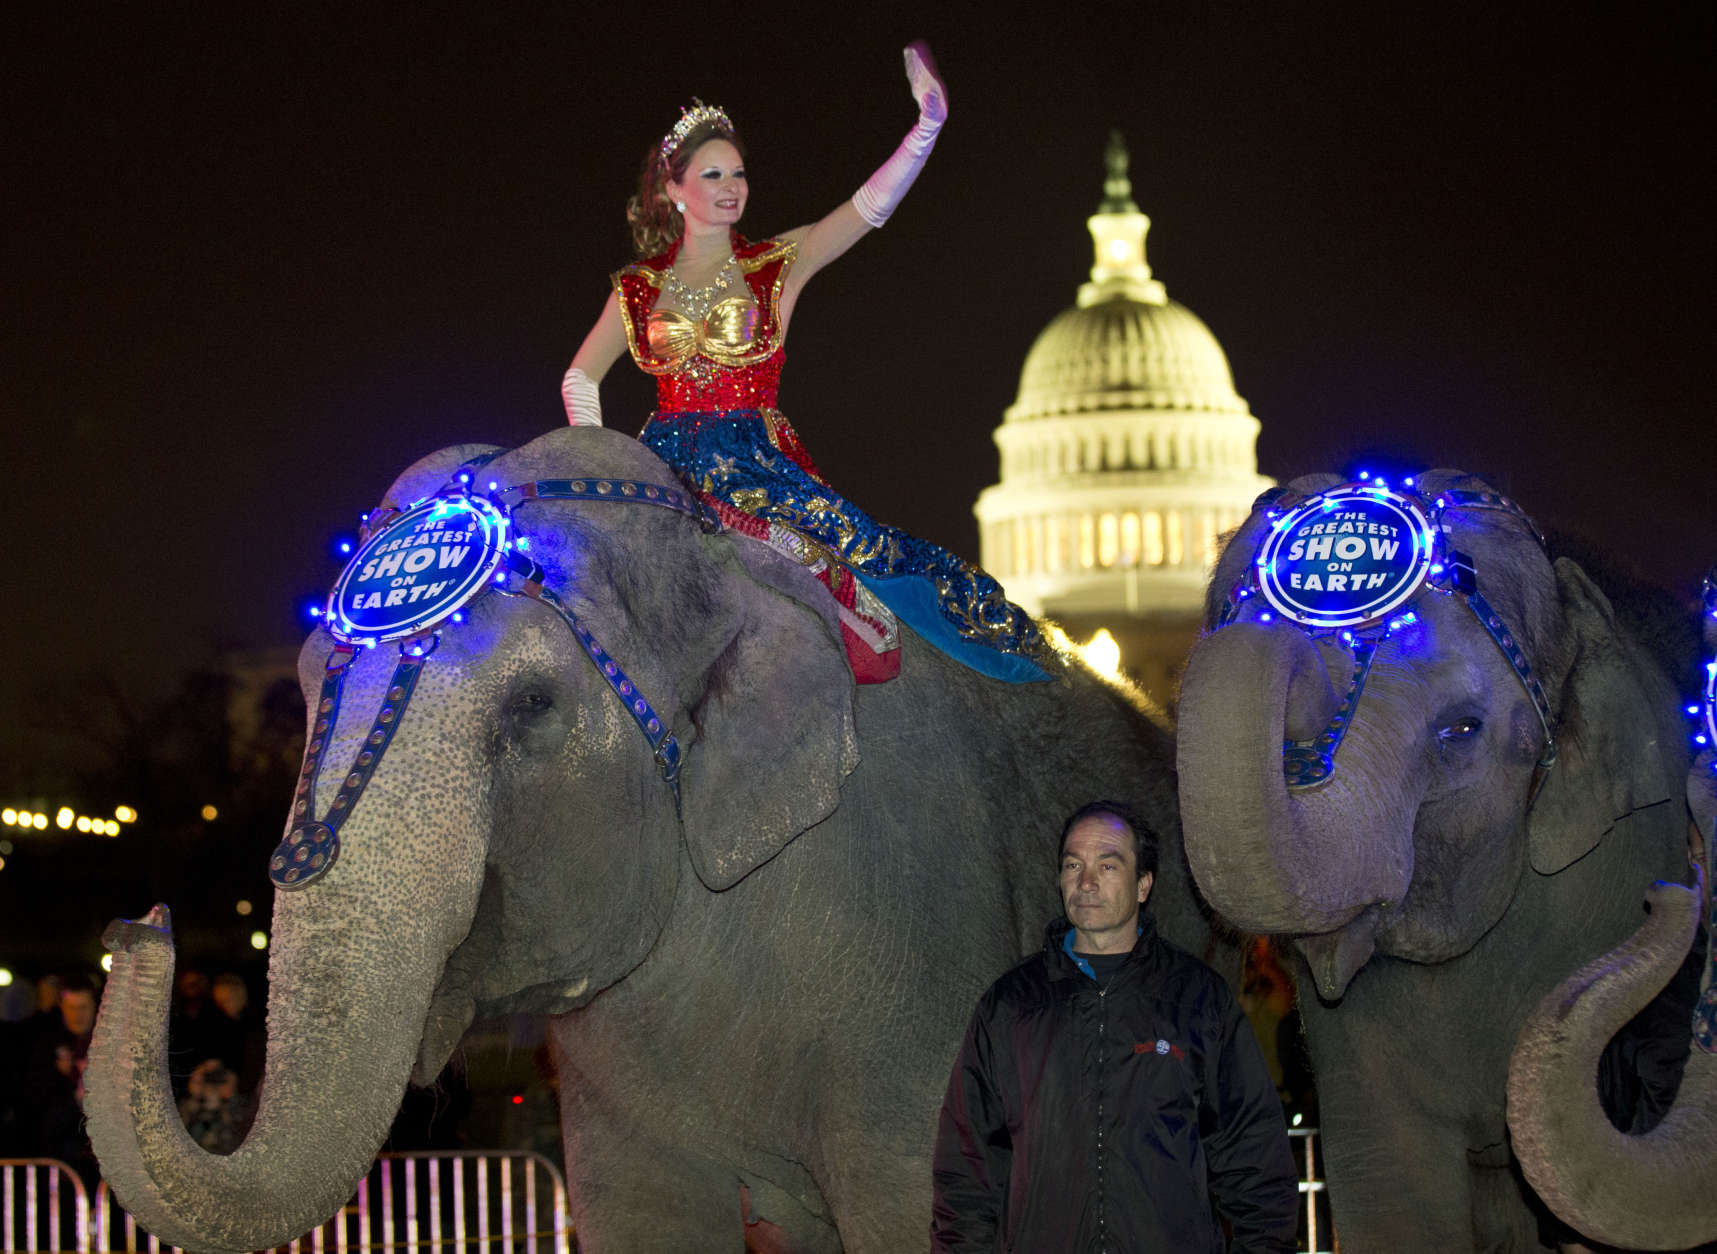 A performer waves as elephants with the Ringling Bros. and Barnum & Bailey show, pause for a photo opportunity on 3rd Street in front of the U.S. Capitol on their way to the Verizon Center, to promote the show coming to town, Tuesday, March 19, 2013, in Washington. (AP Photo/Alex Brandon)